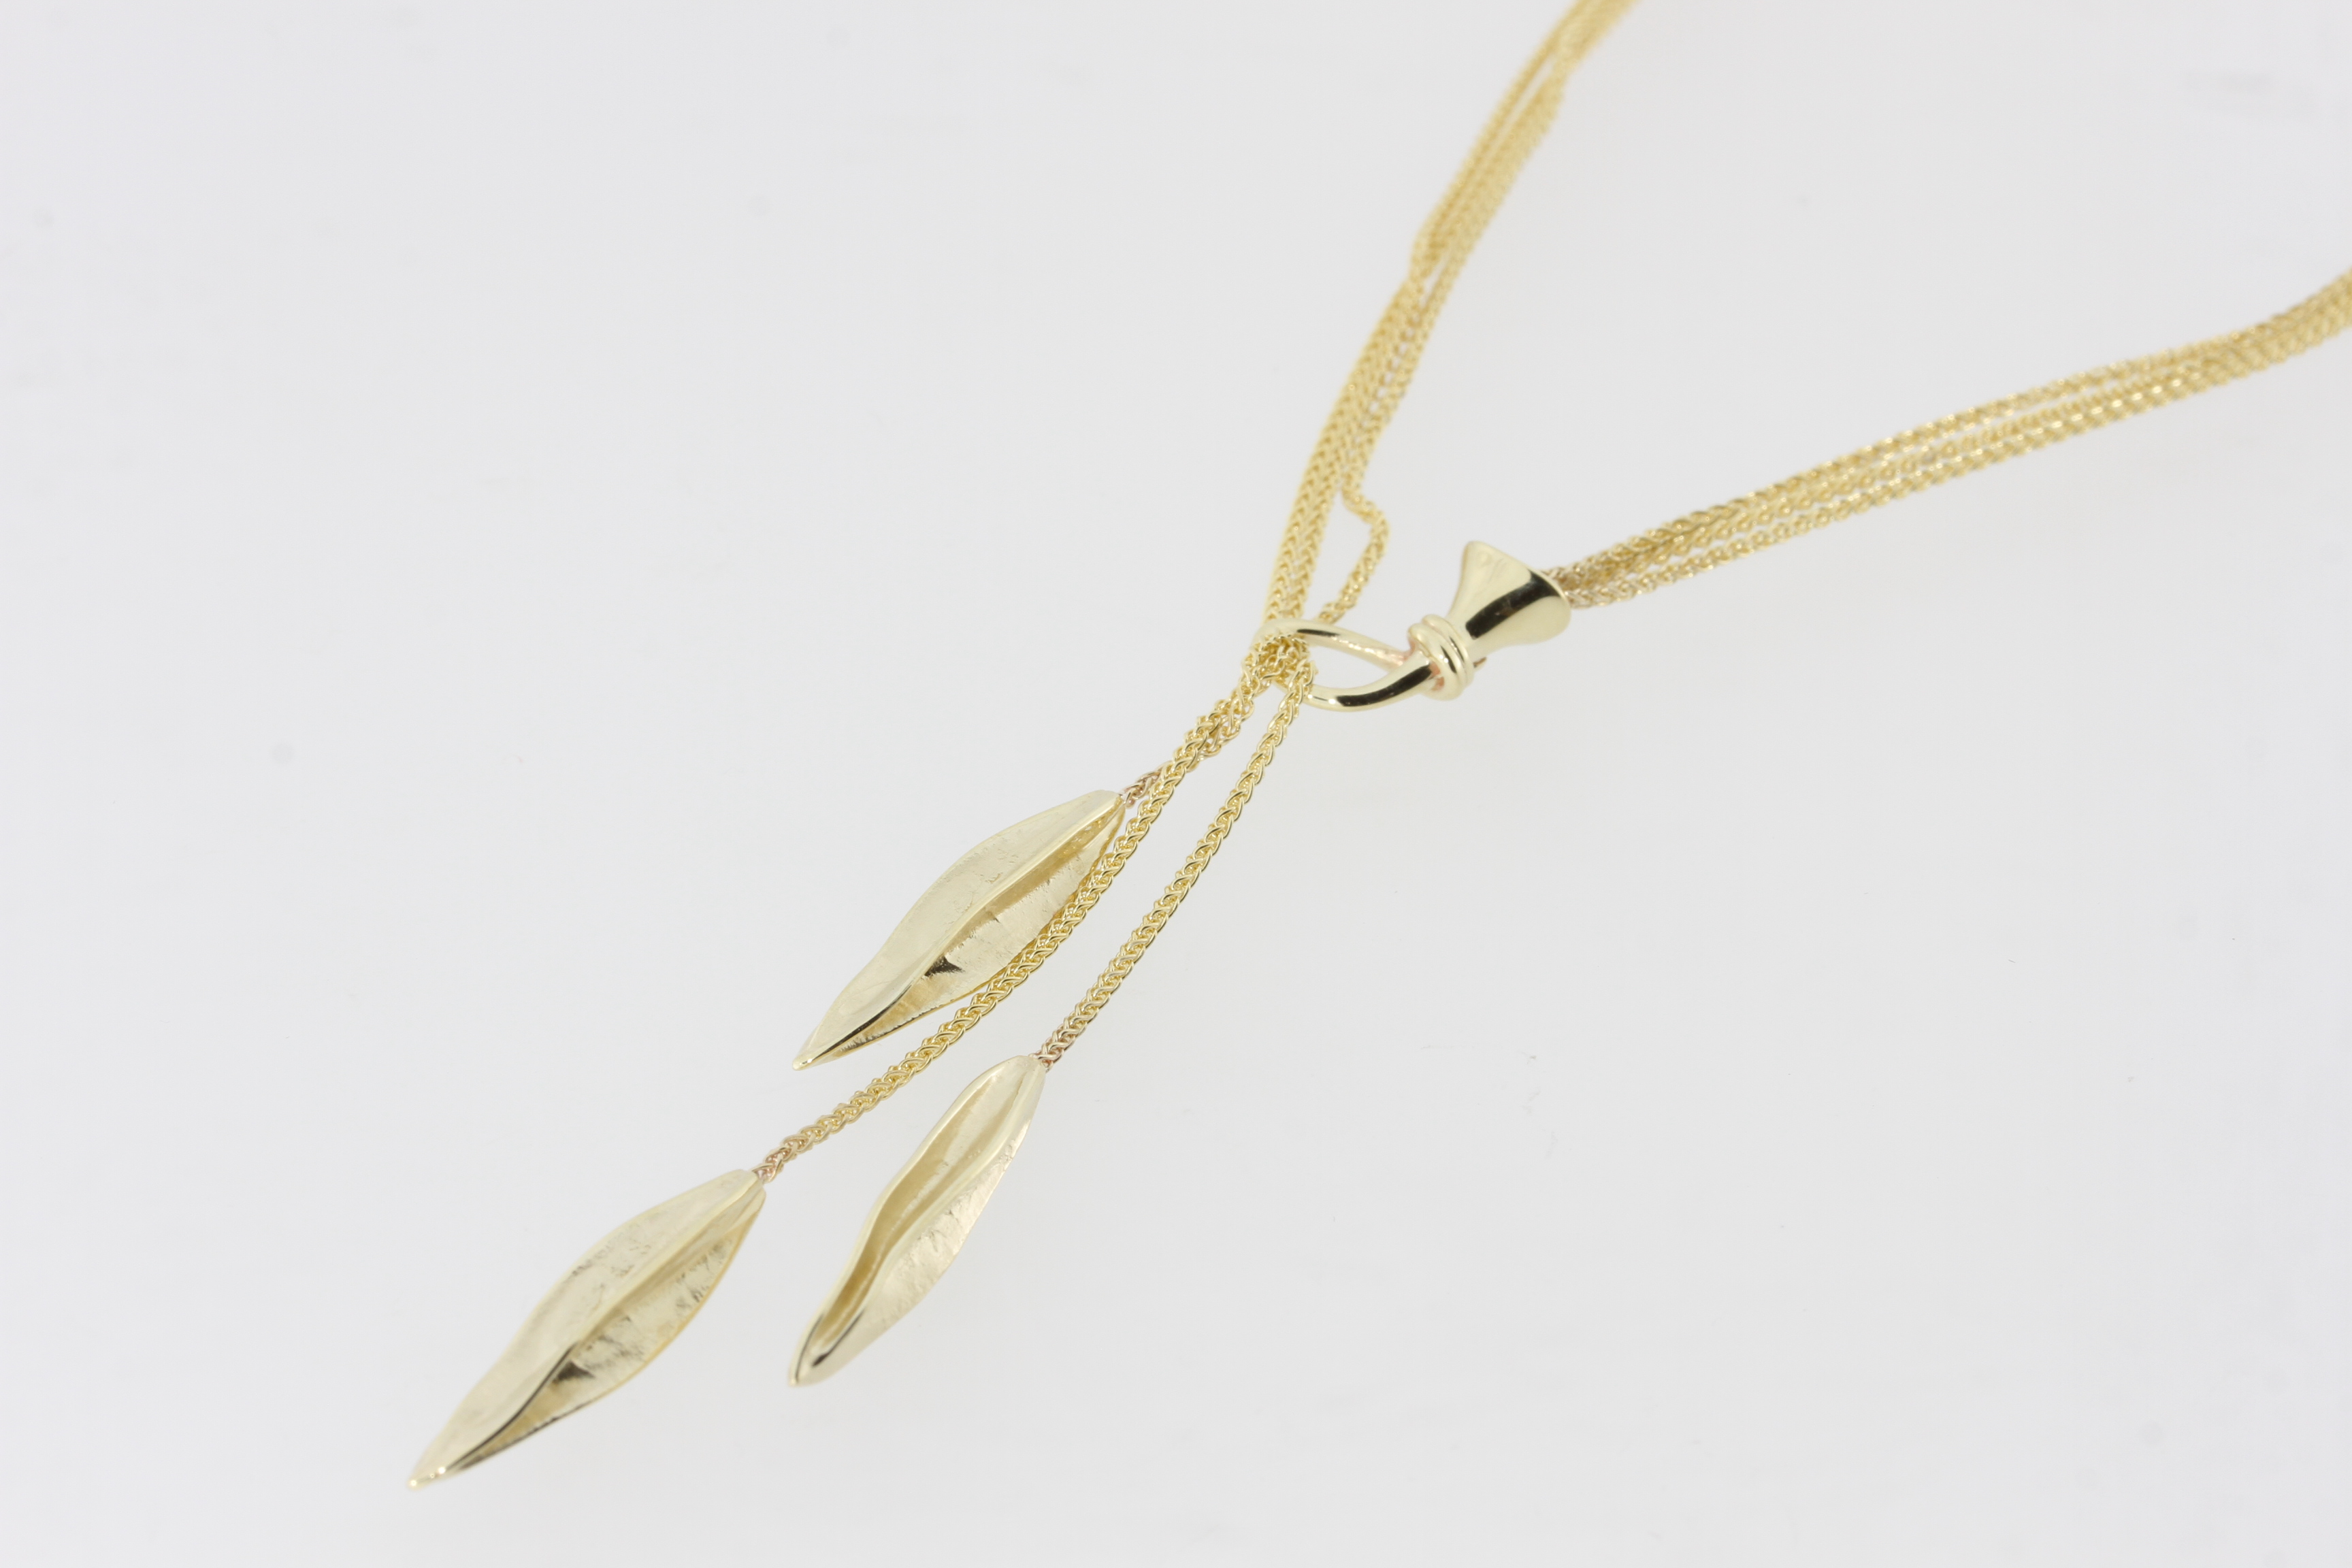 Payet seed pod necklace